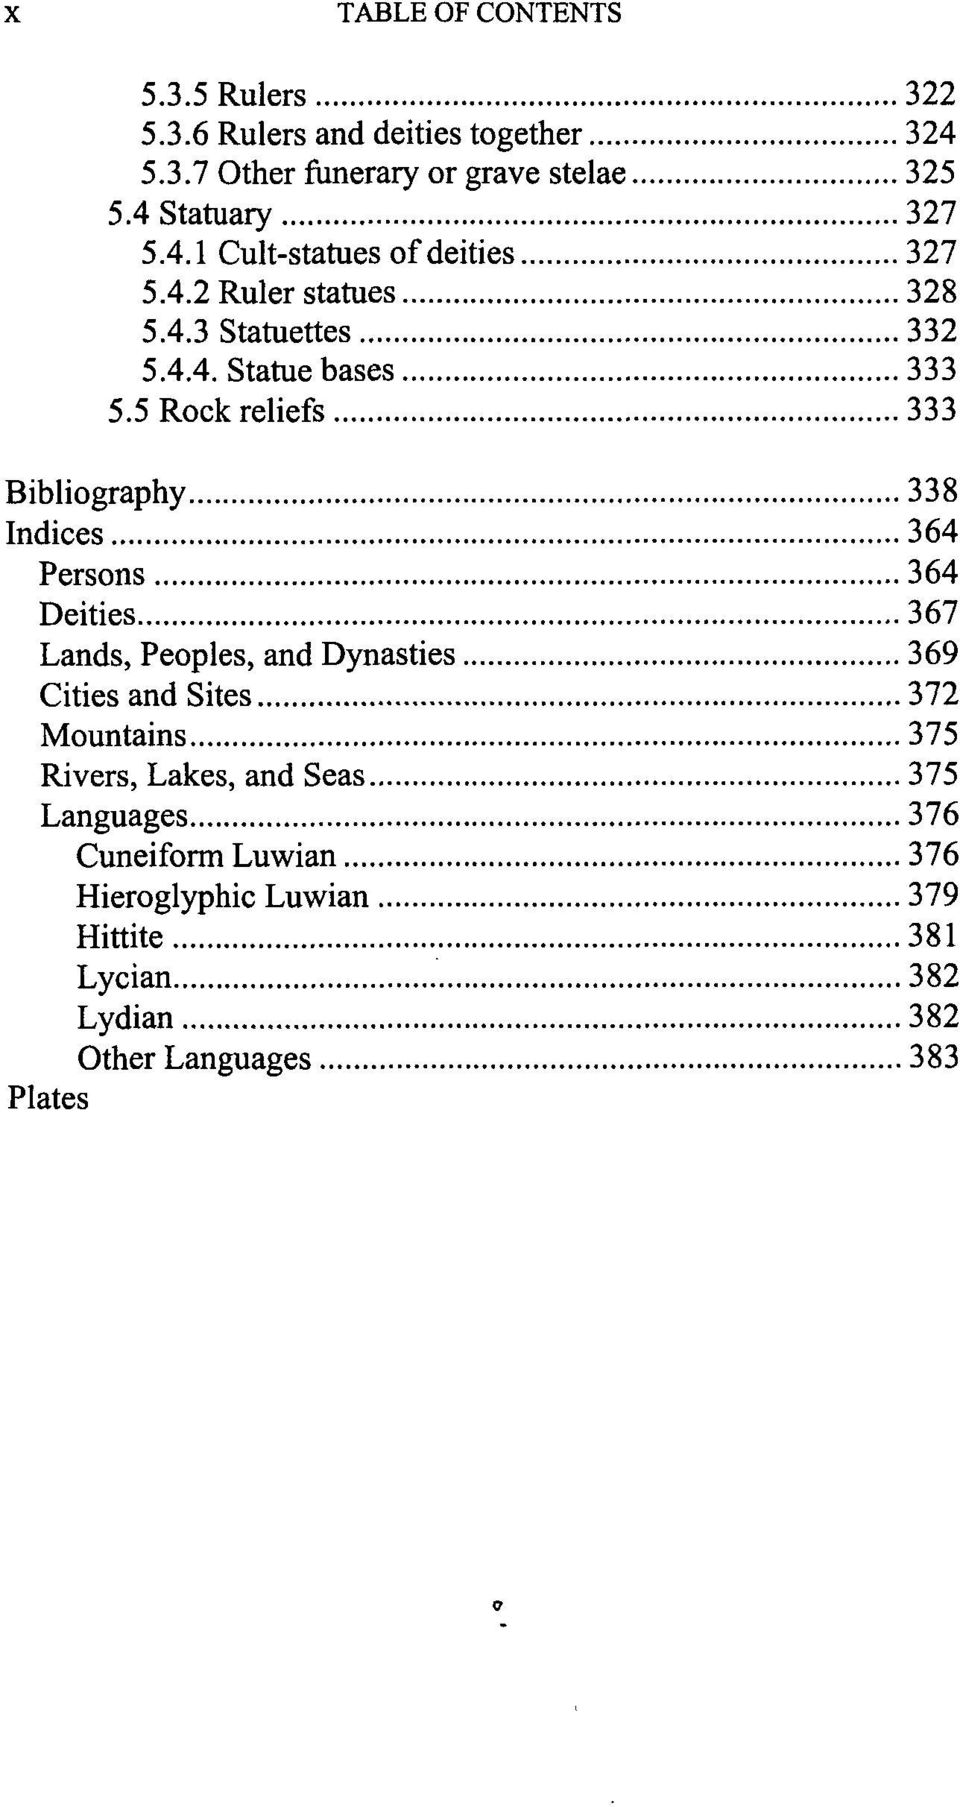 5 Rock reliefs 333 Bibliography 338 Indices 364 Persons 364 Deities 367 Lands, Peoples, and Dynasties 369 Cities and Sites 372